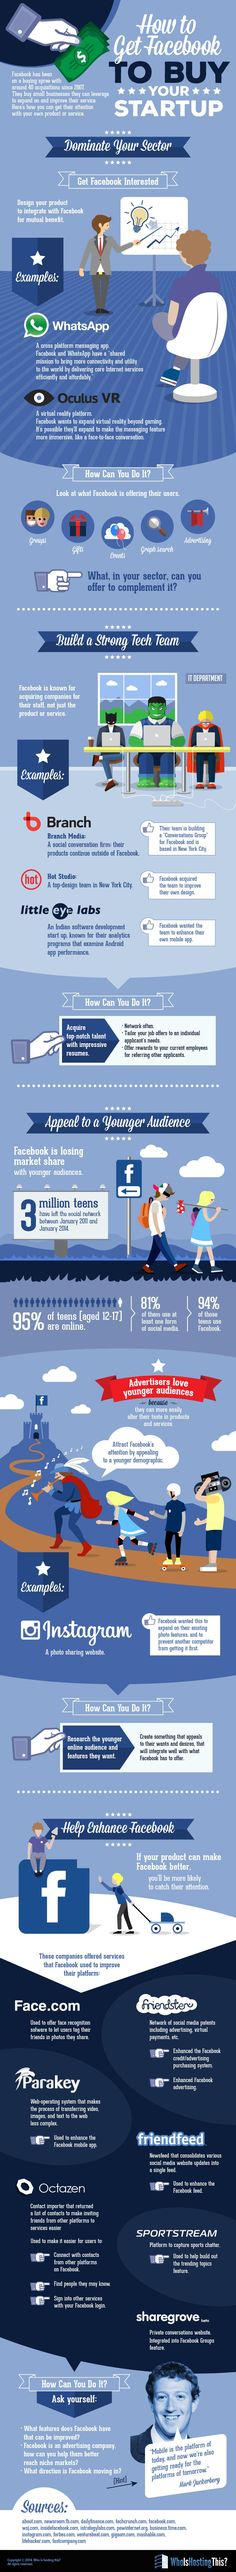 How to Get #Facebook to Buy Your #Startup - #infographic